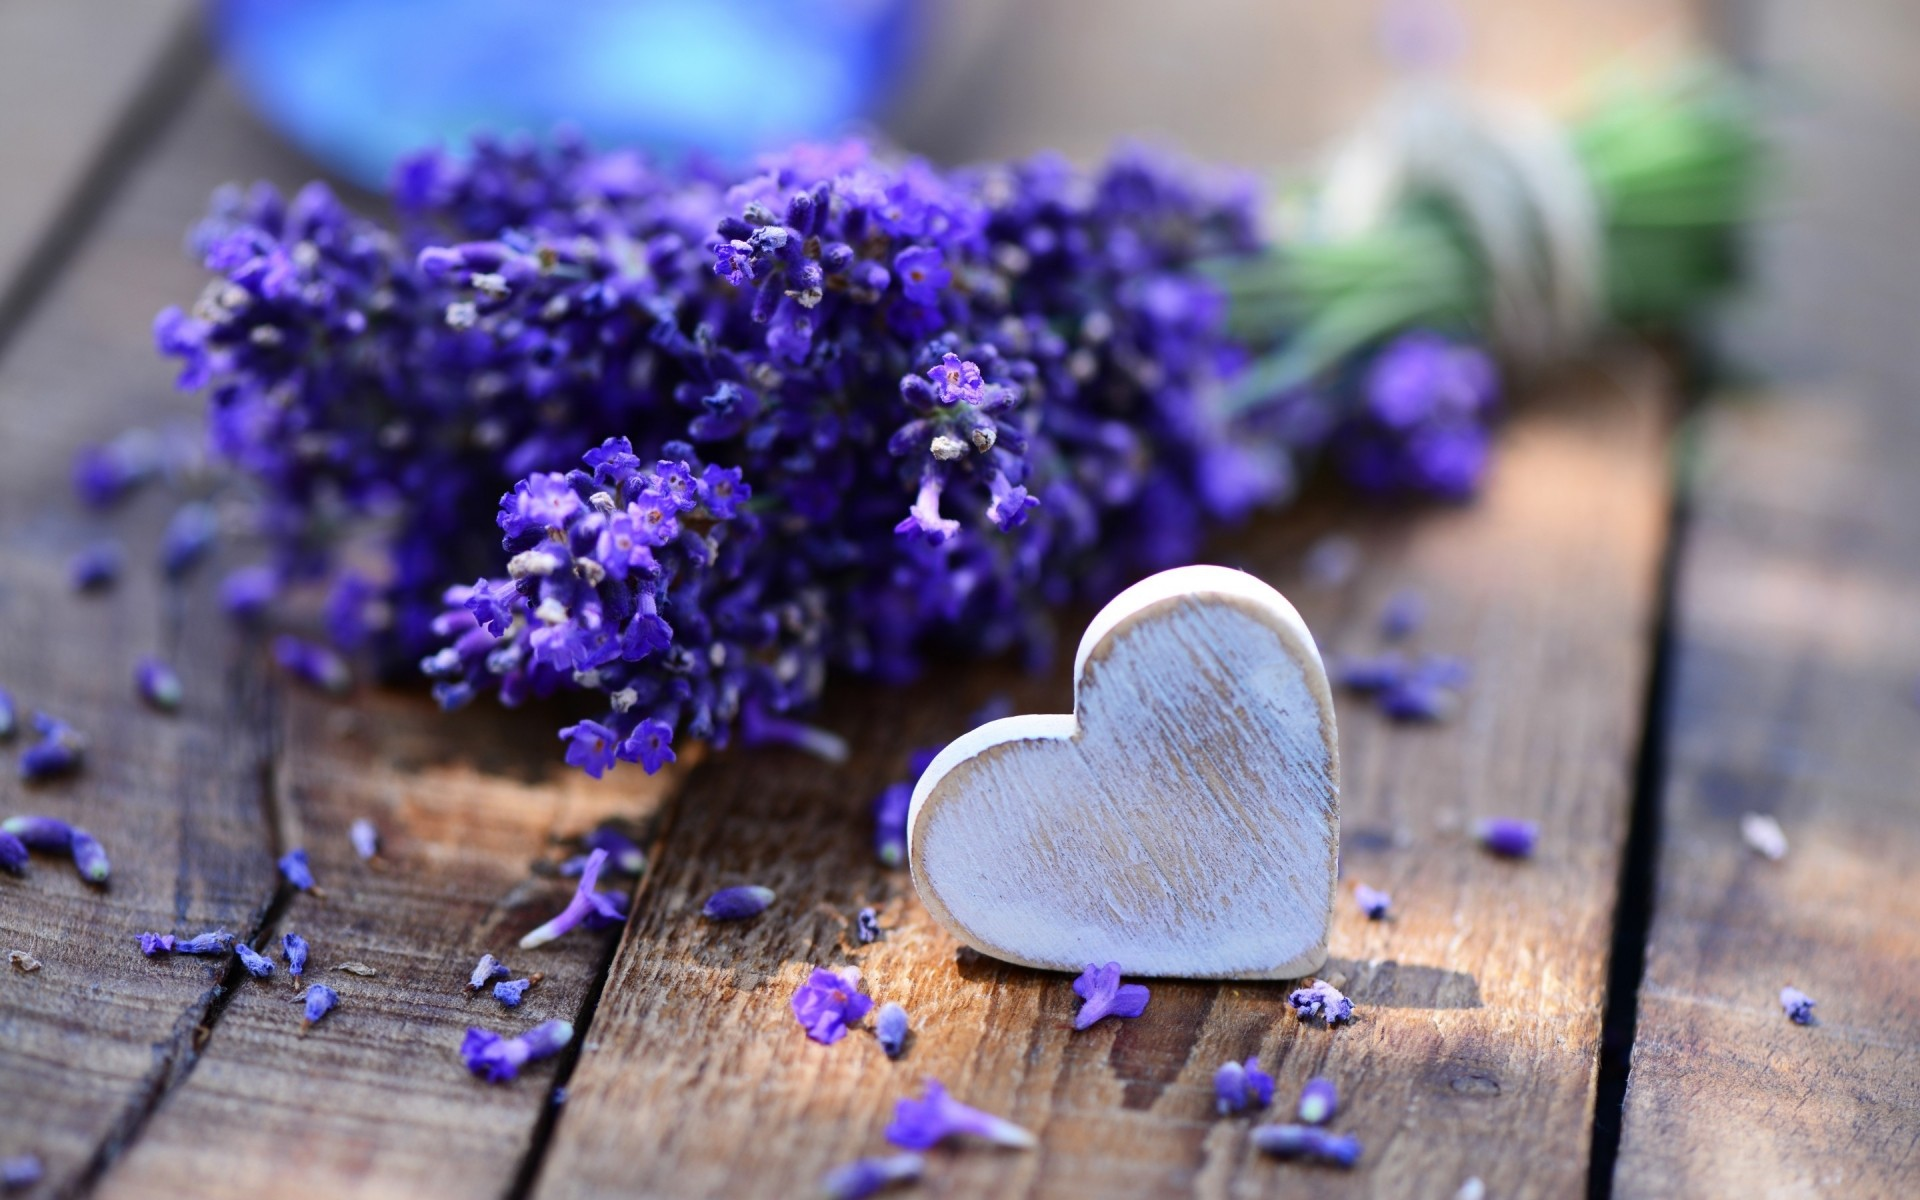 flowers aromatherapy flower lavender nature wood blur flora medicine perfume herbal herb close-up still life leaf aromatic heart love ornaments